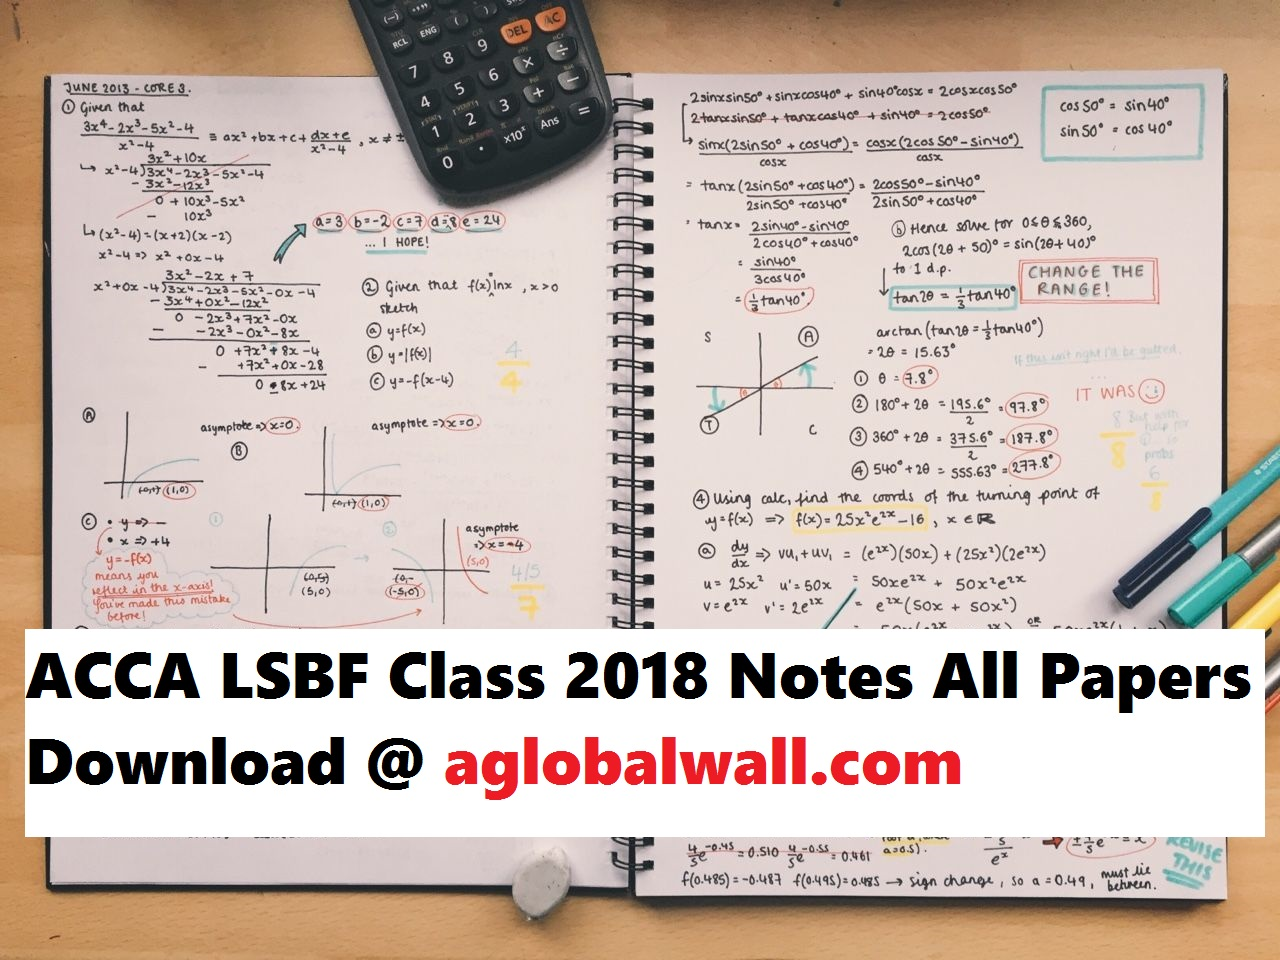 ACCA LSBF Class 2018 Notes All Papers Download - ACCA Study